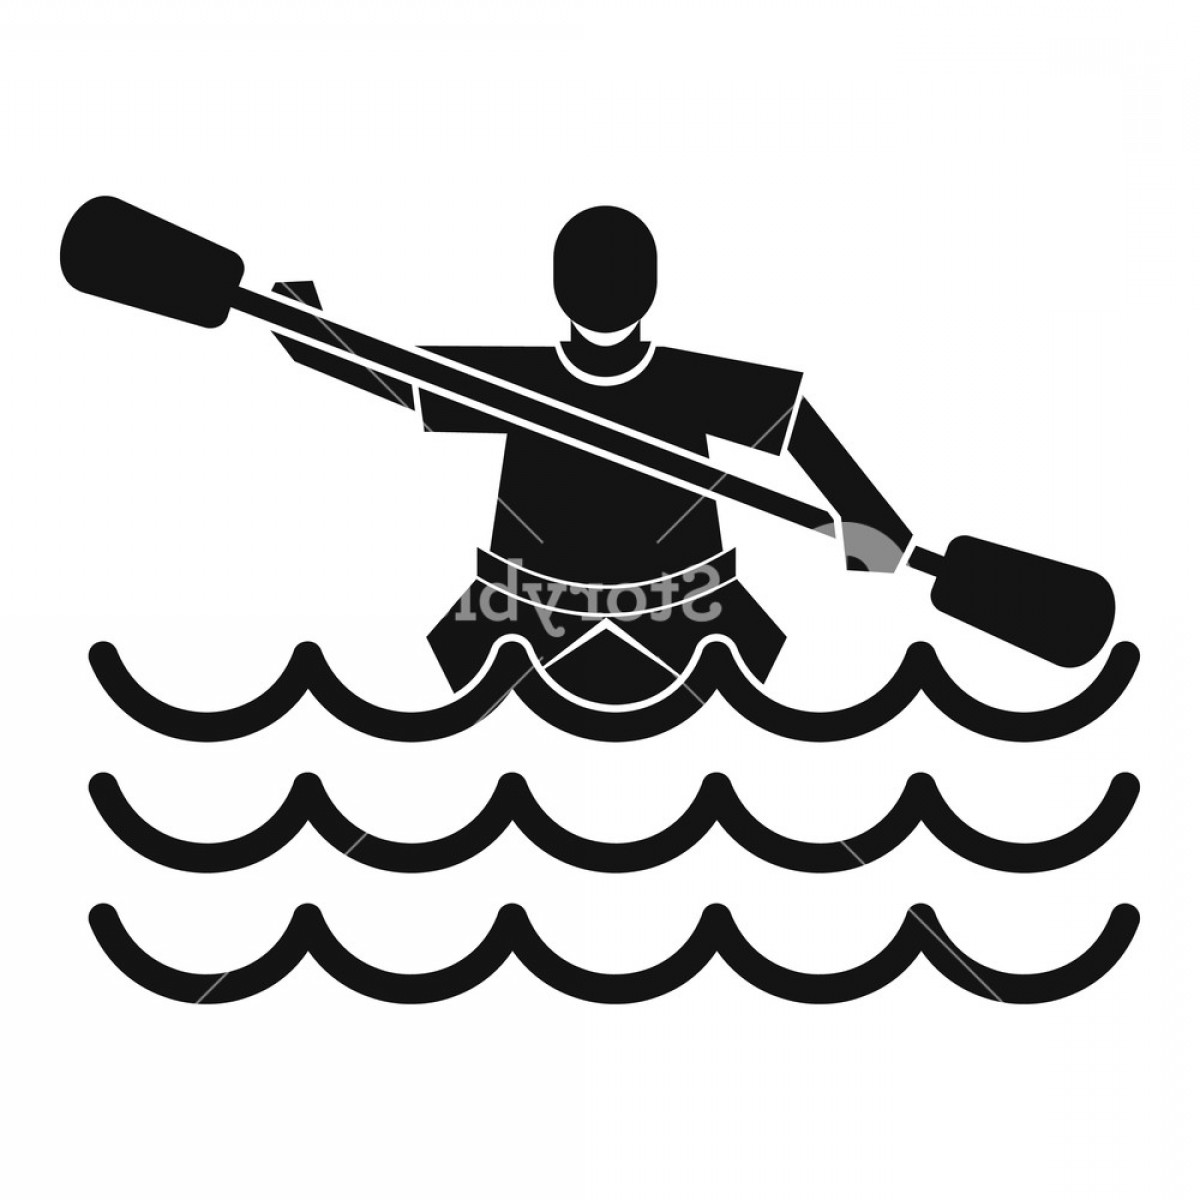 Canoe Vector: Male Athlete In A Canoe Icon Simple Illustration Of Male Athlete In A Canoe Vector Icon For Web Rdmbtggomjhryxkd